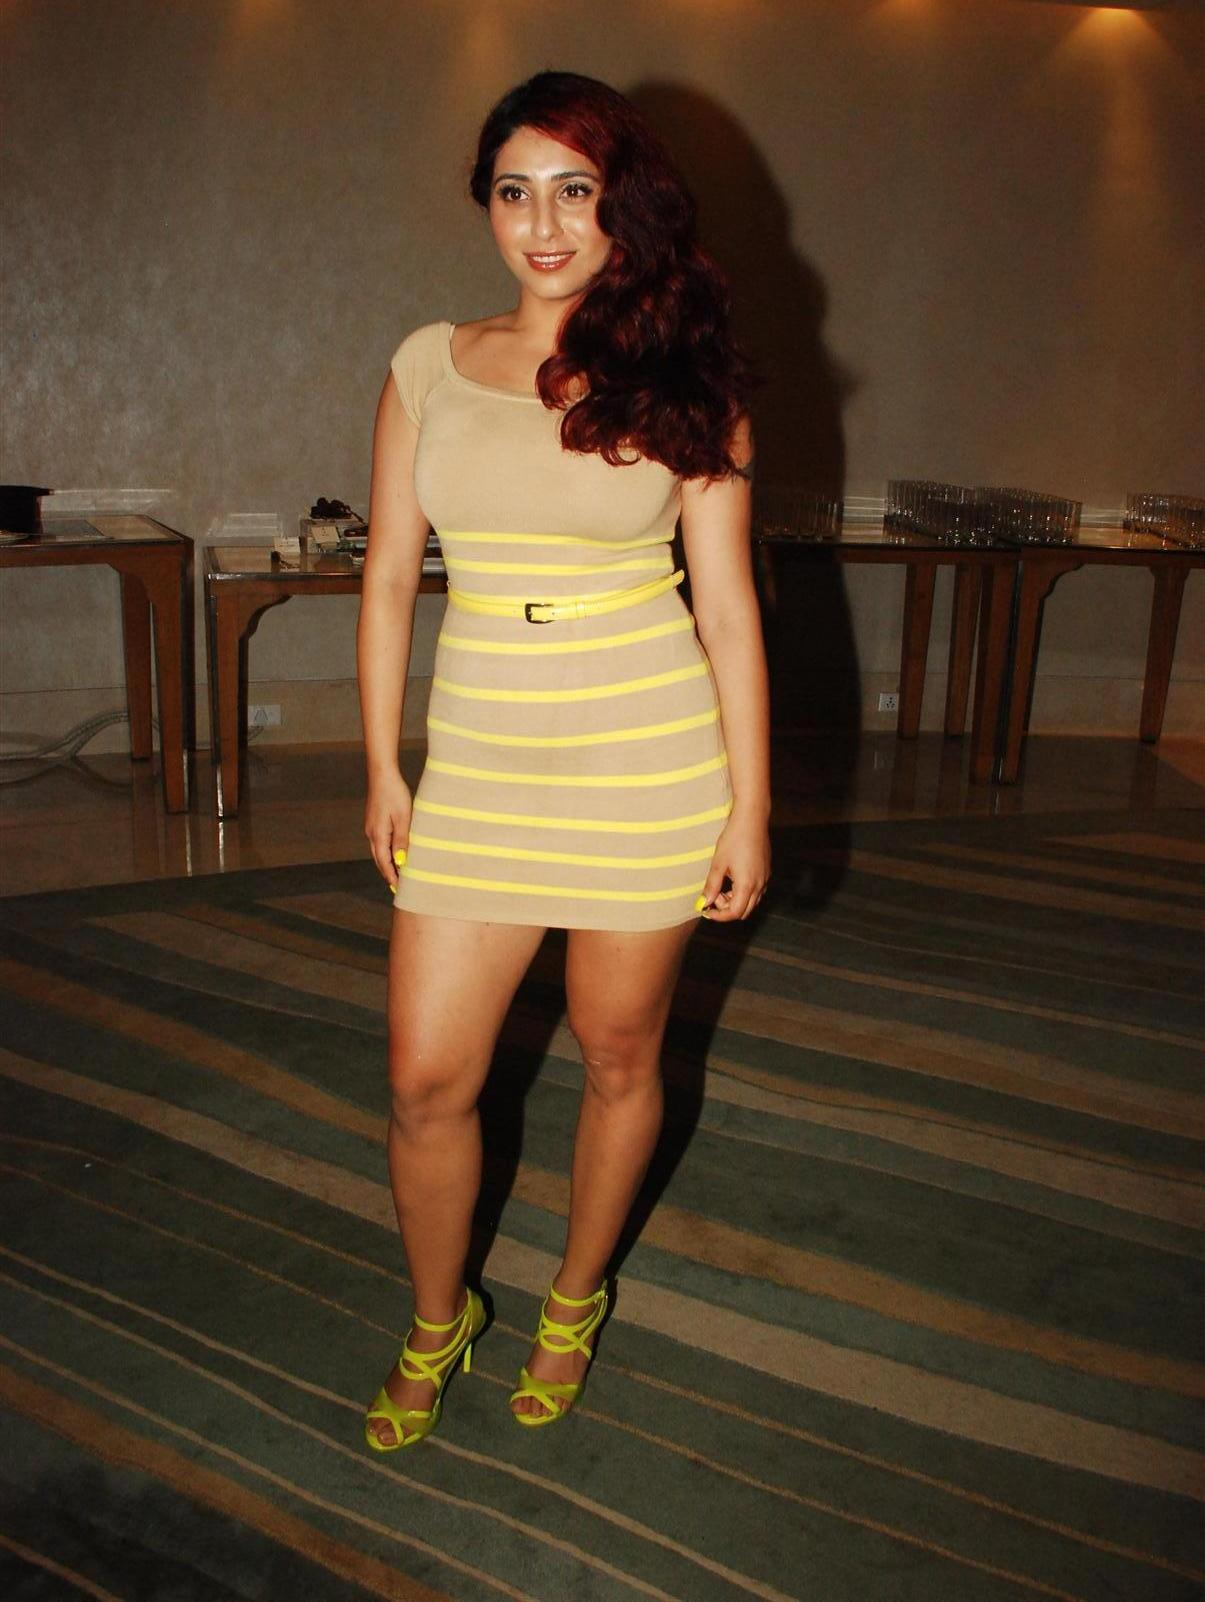 Neha Bhasin - Wikipedia